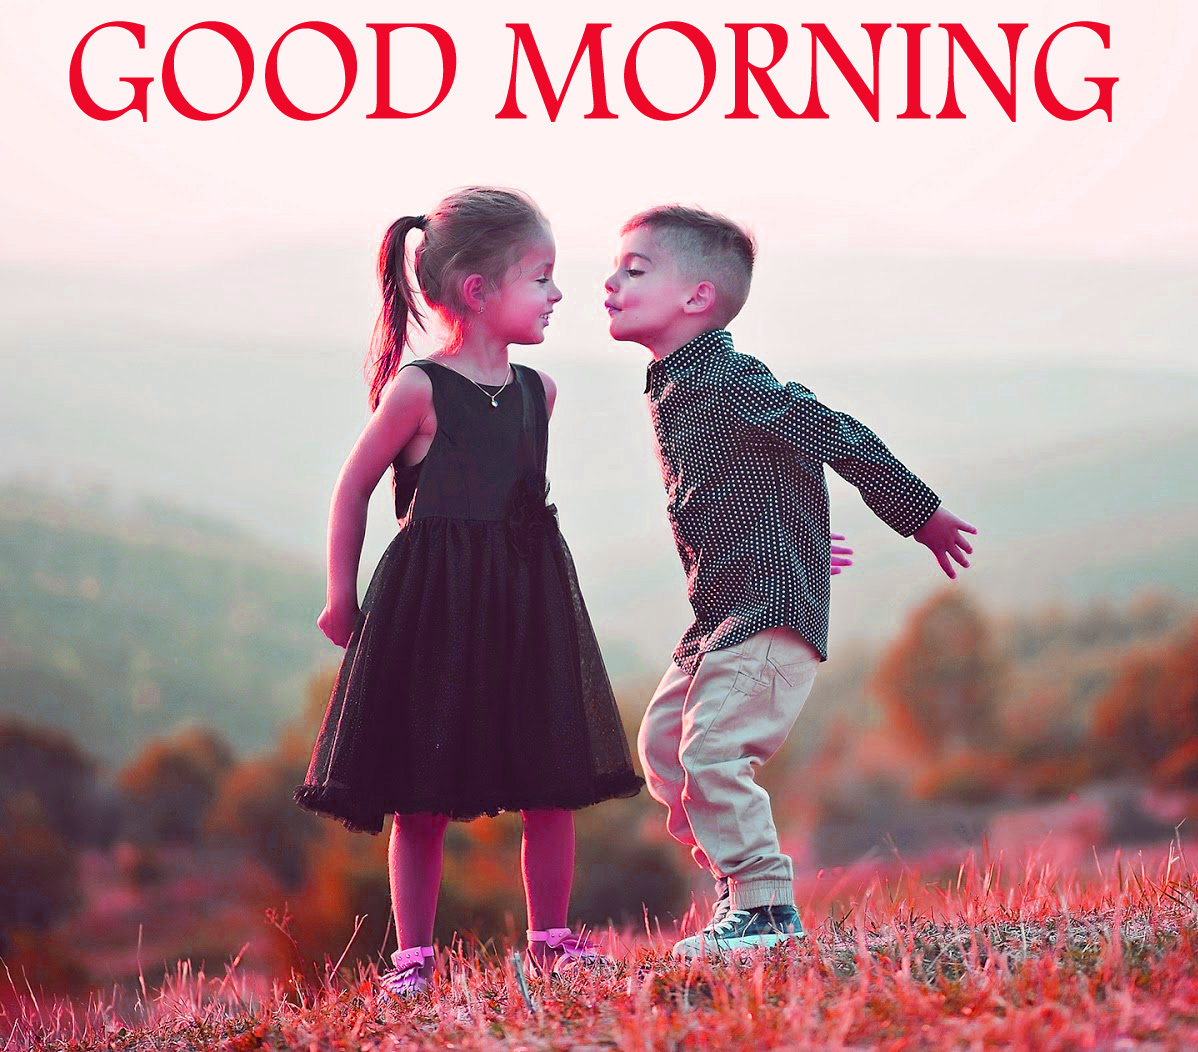 Good Morning Wishes Images Download for Whatsapp & Facebook